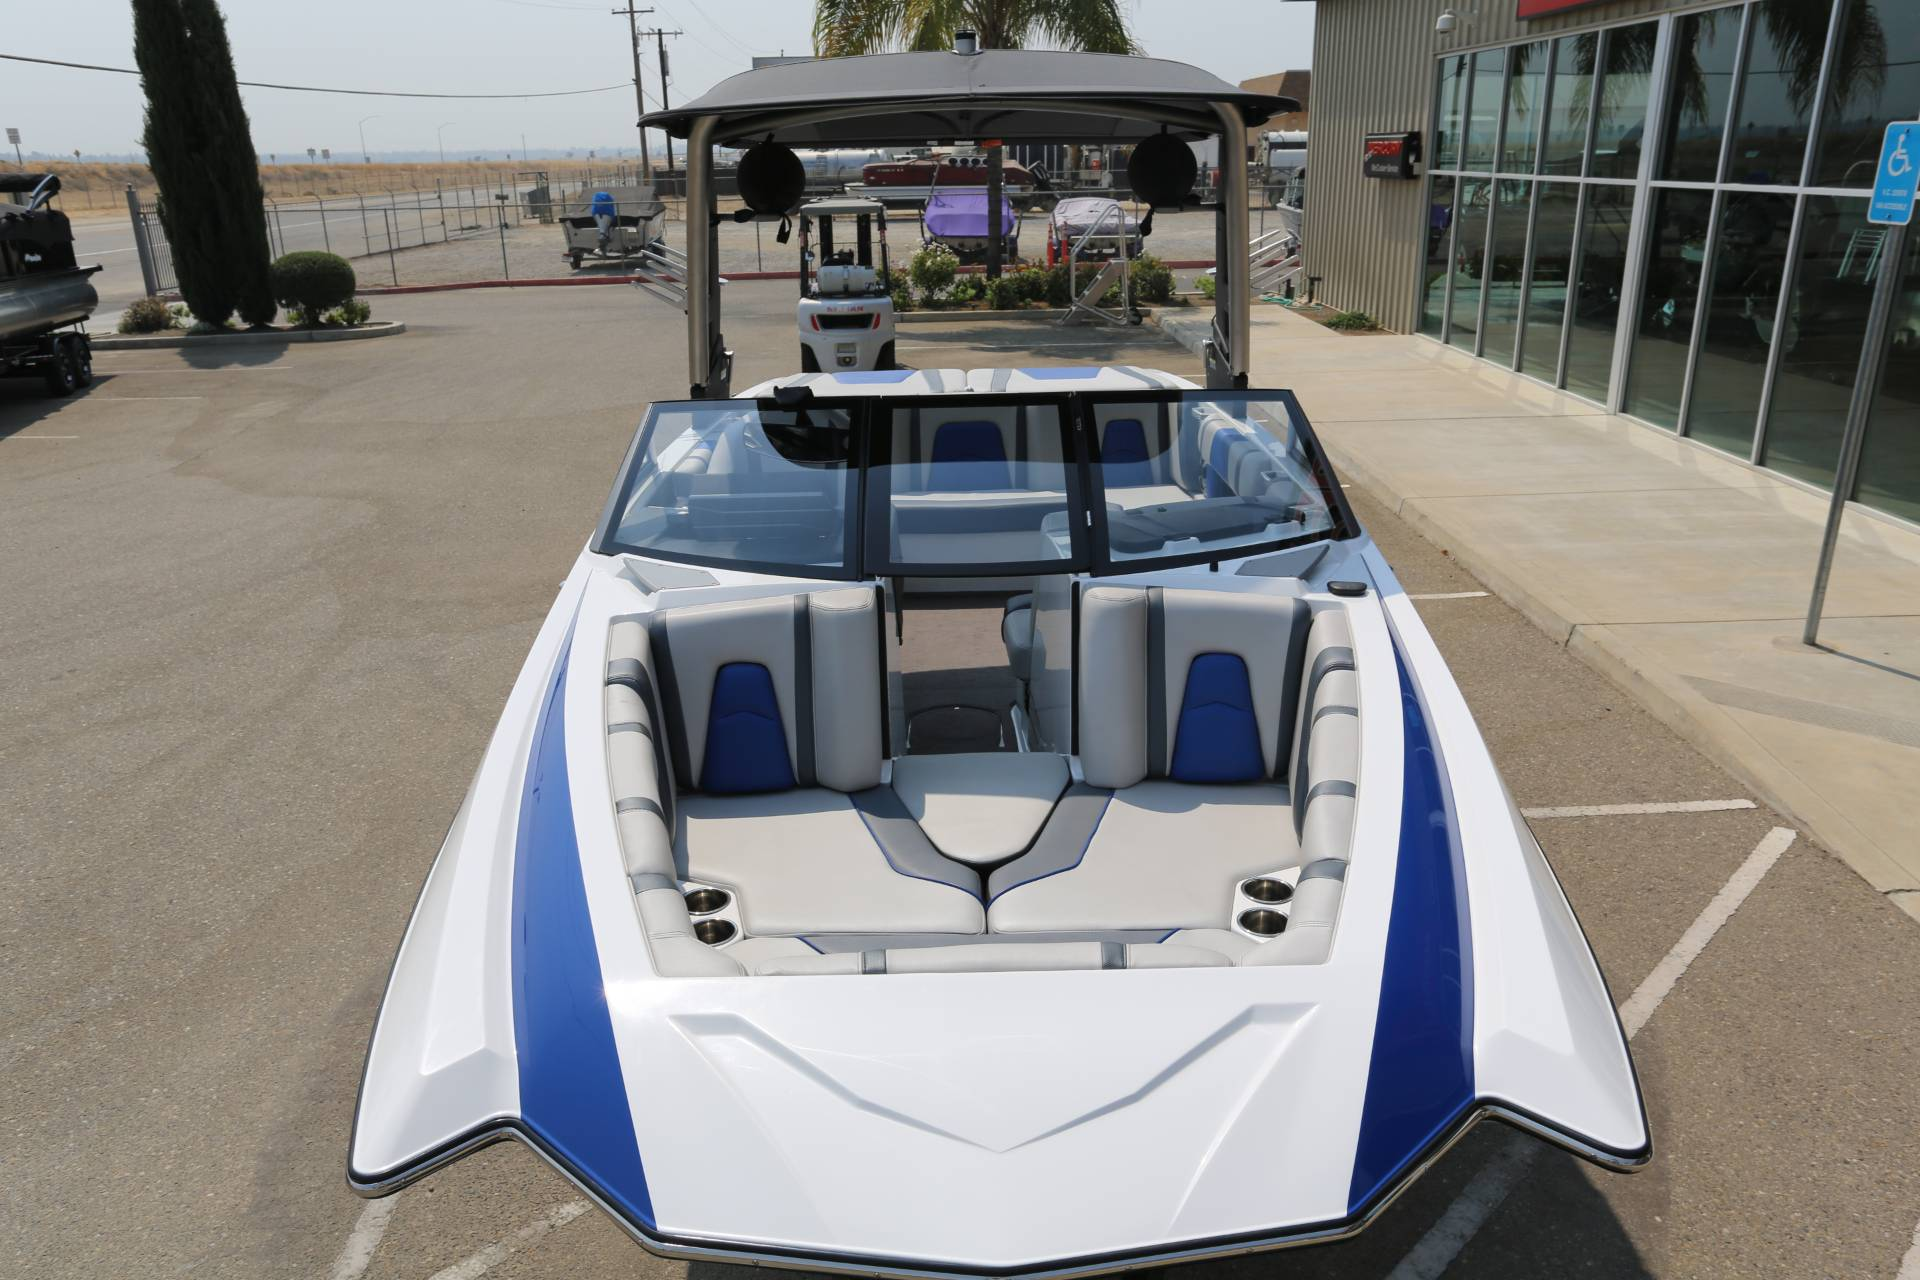 2018 Malibu 21 MLX in Madera, California - Photo 14